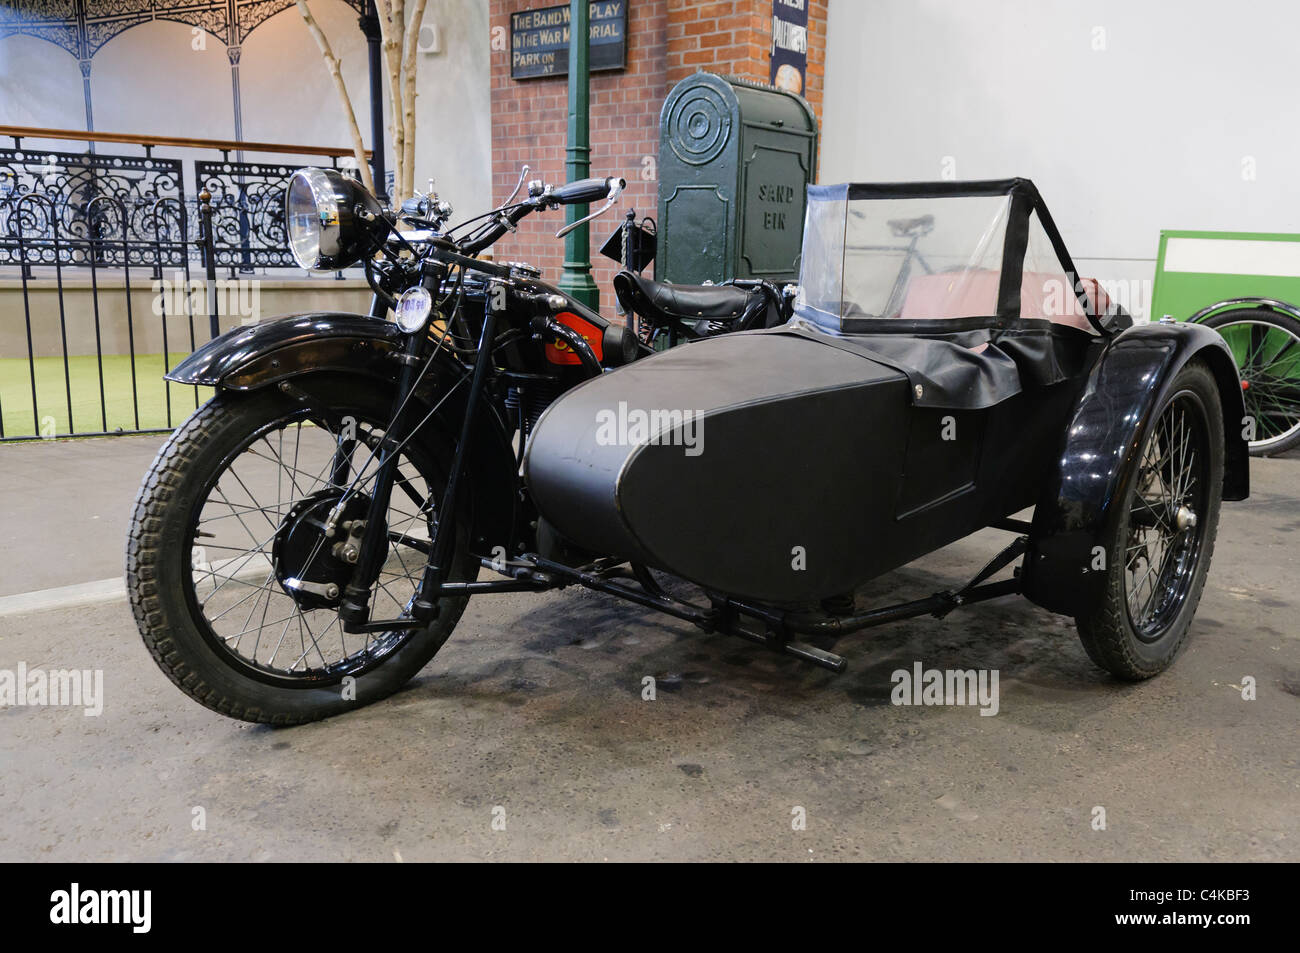 sidecar stockfotos sidecar bilder seite 2 alamy. Black Bedroom Furniture Sets. Home Design Ideas